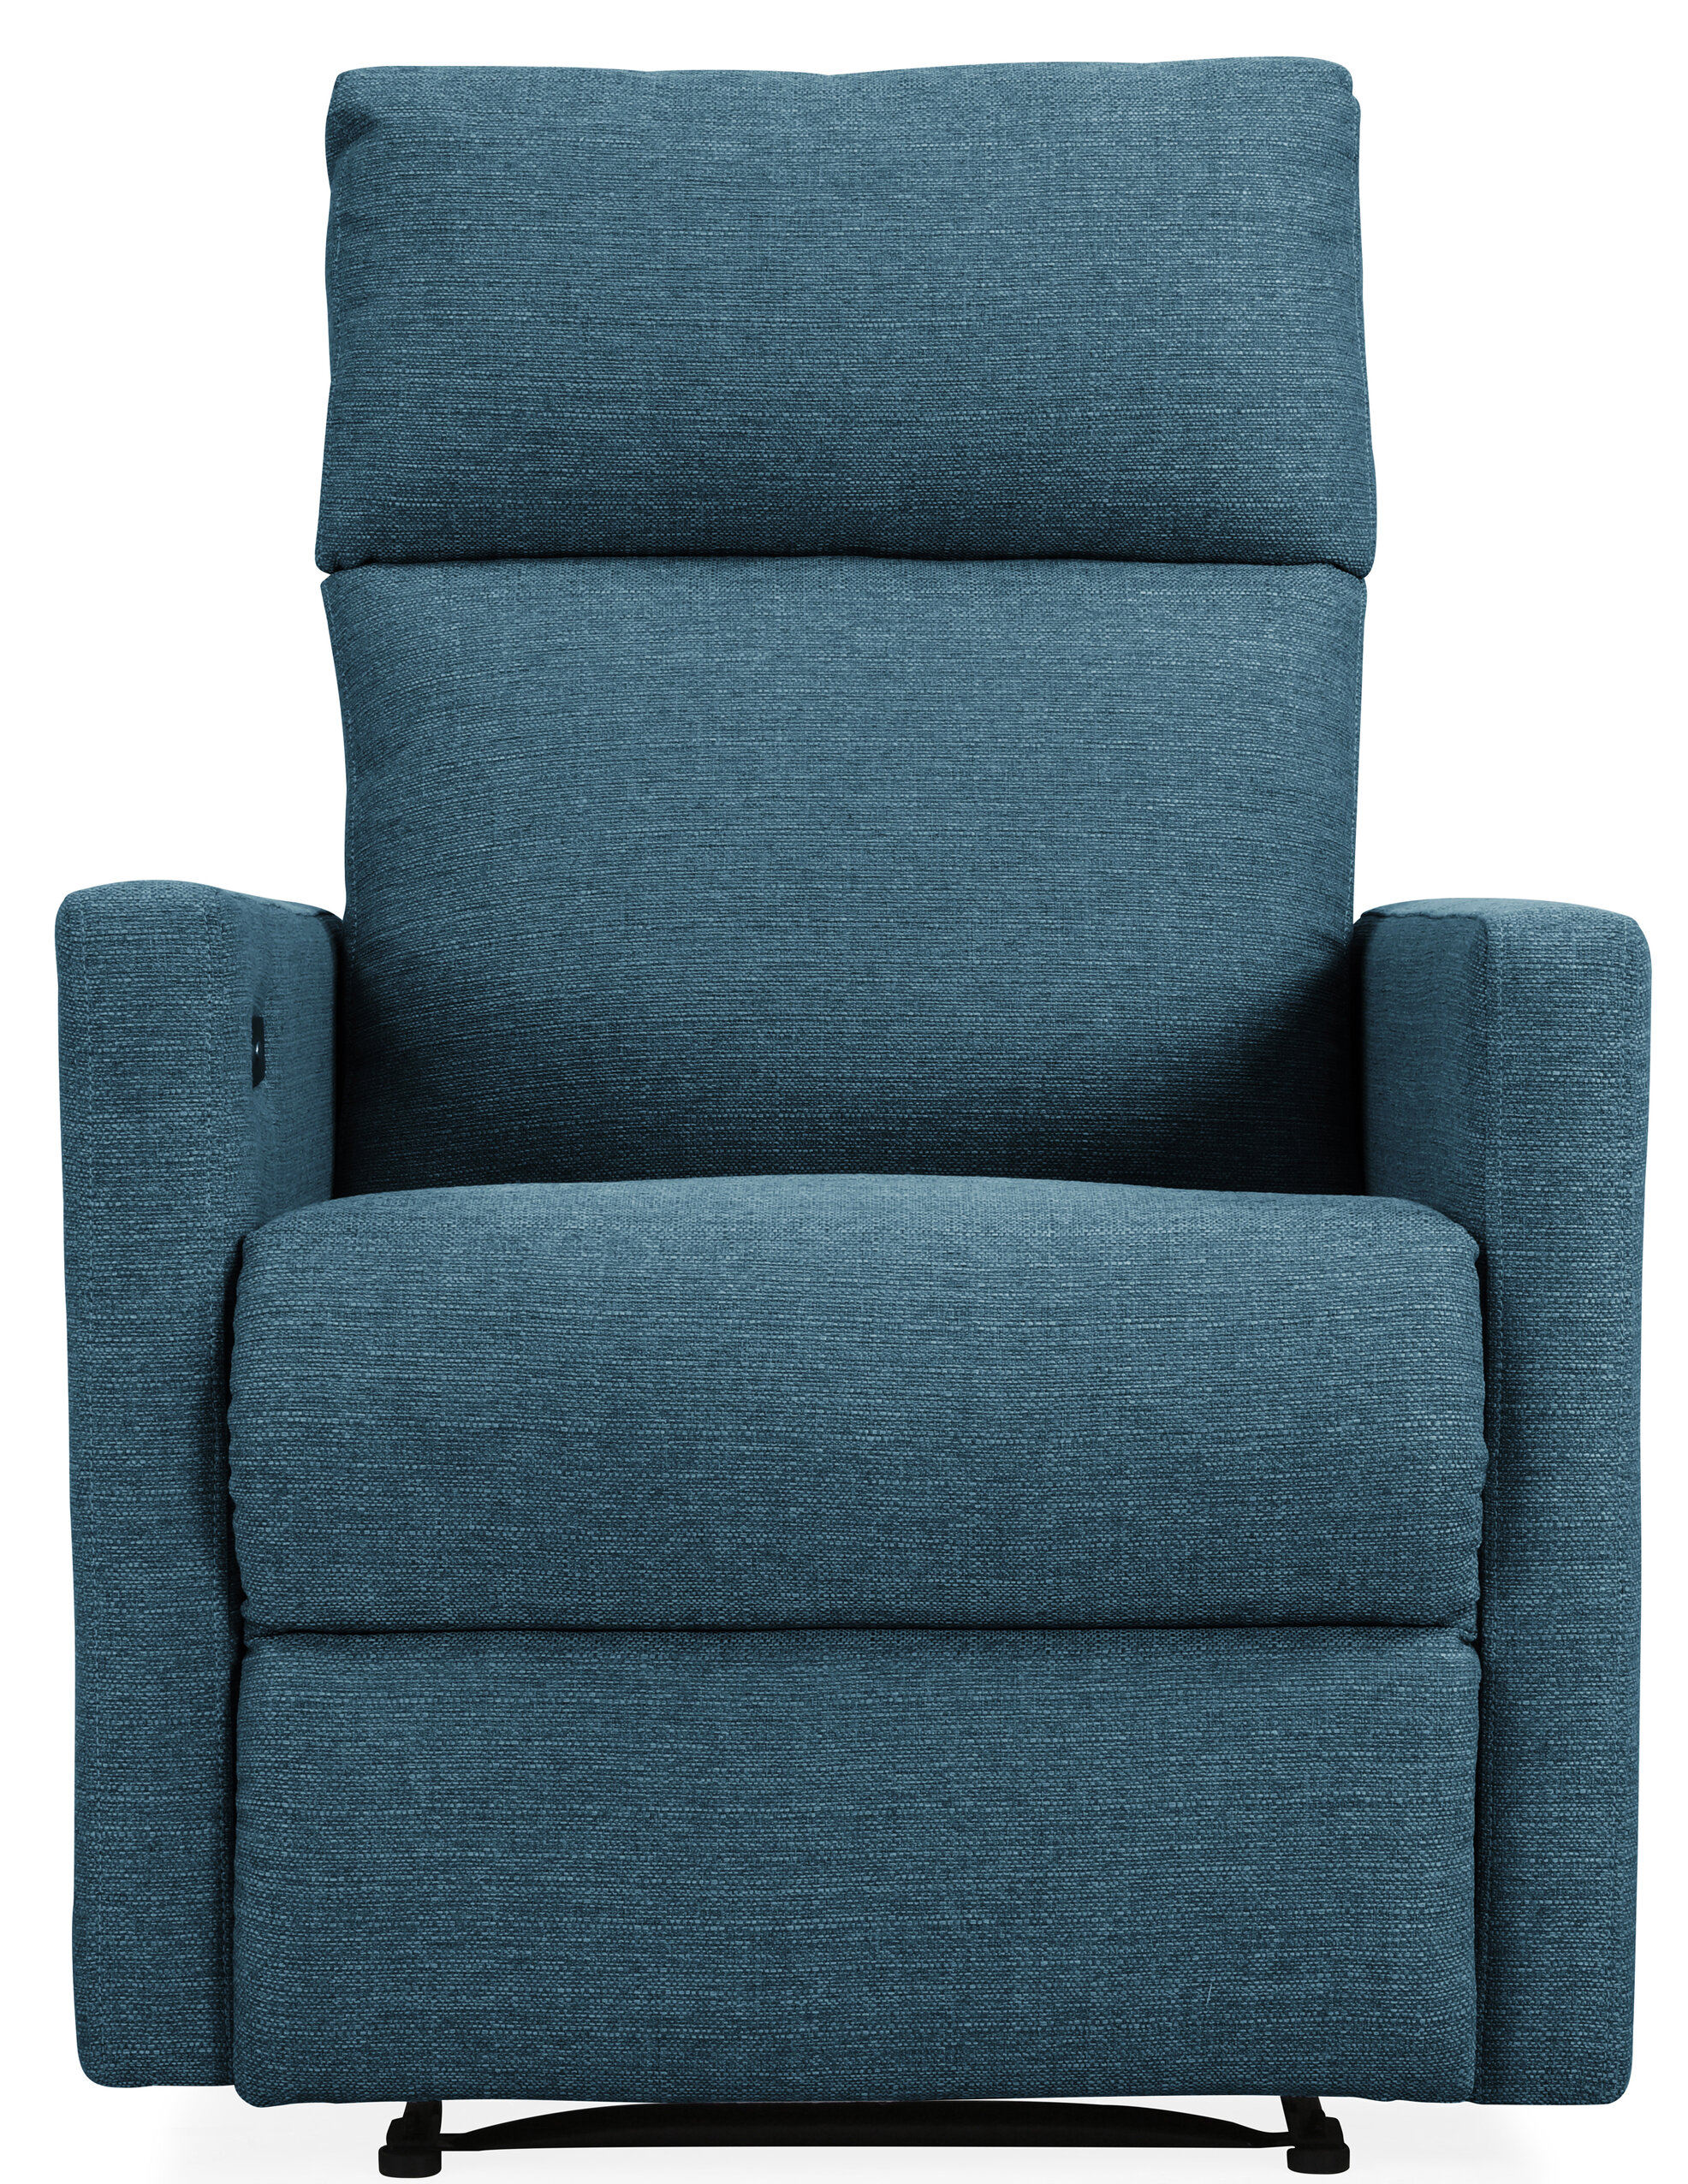 Rv Chairs Recliners >> Small Wall Hugger Recliners You Ll Love In 2019 Wayfair